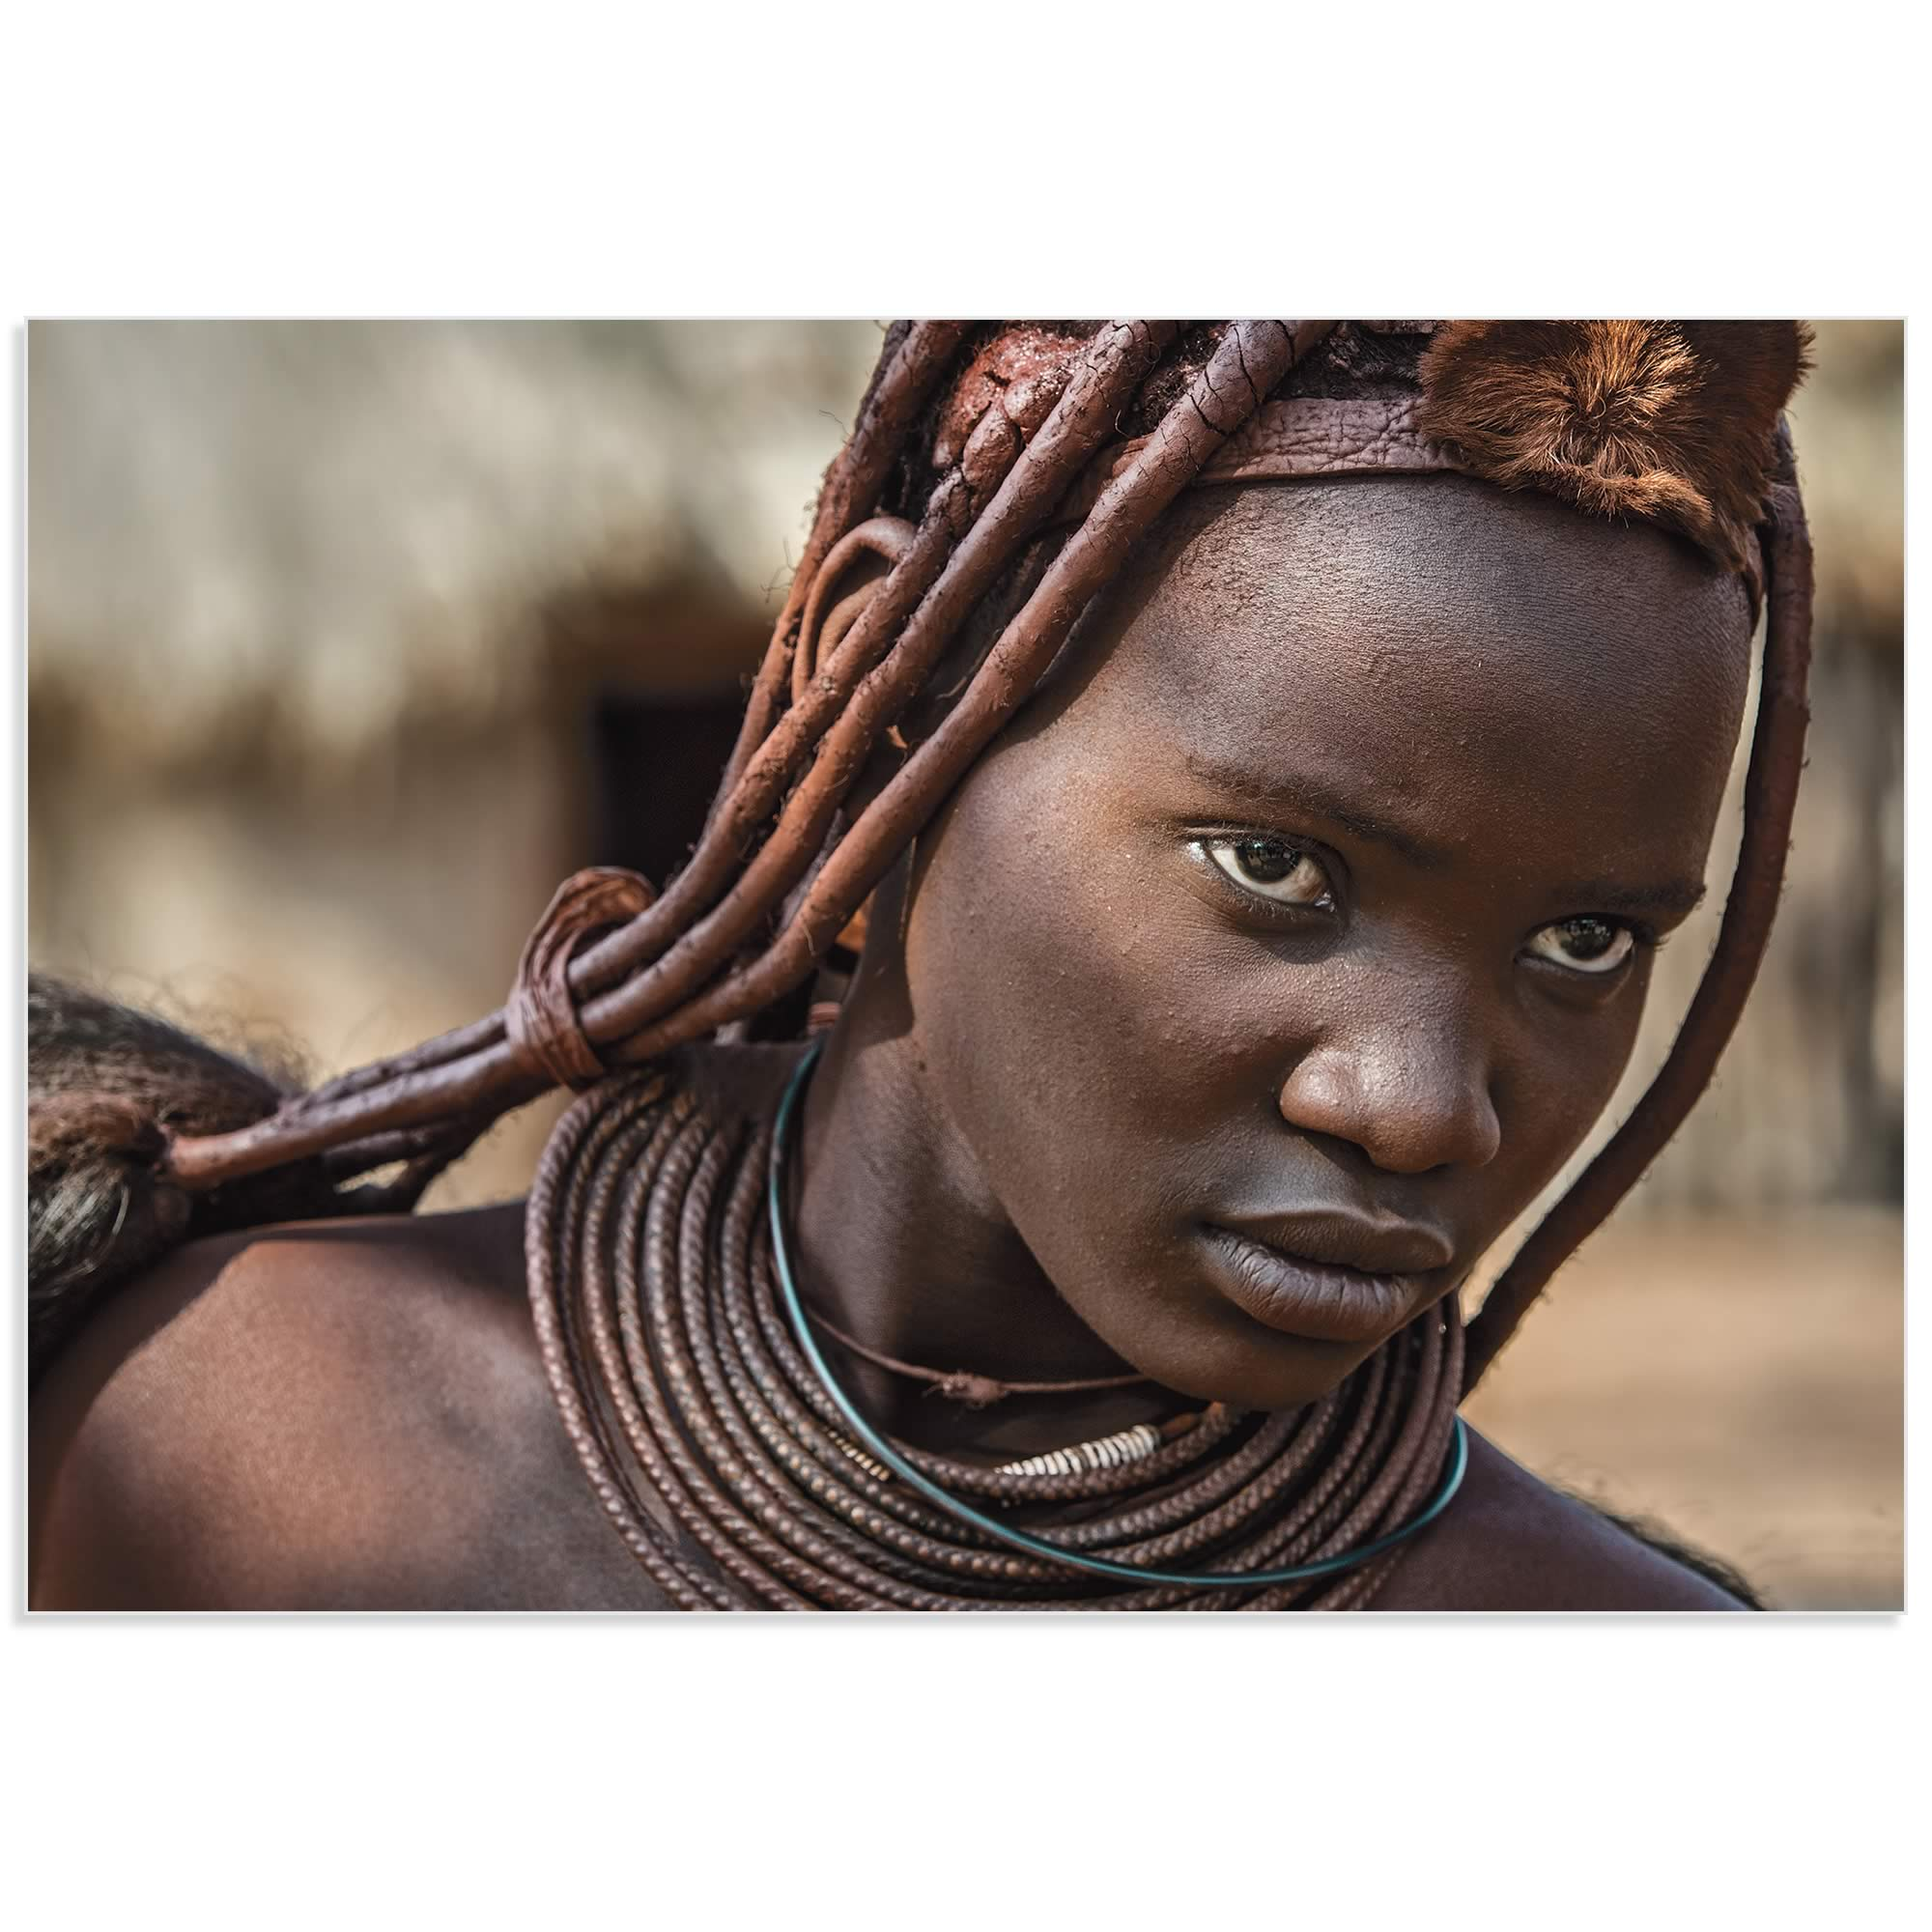 Himba Girl by Piet Flour - African Fashion Art on Metal or Acrylic - Alternate View 2